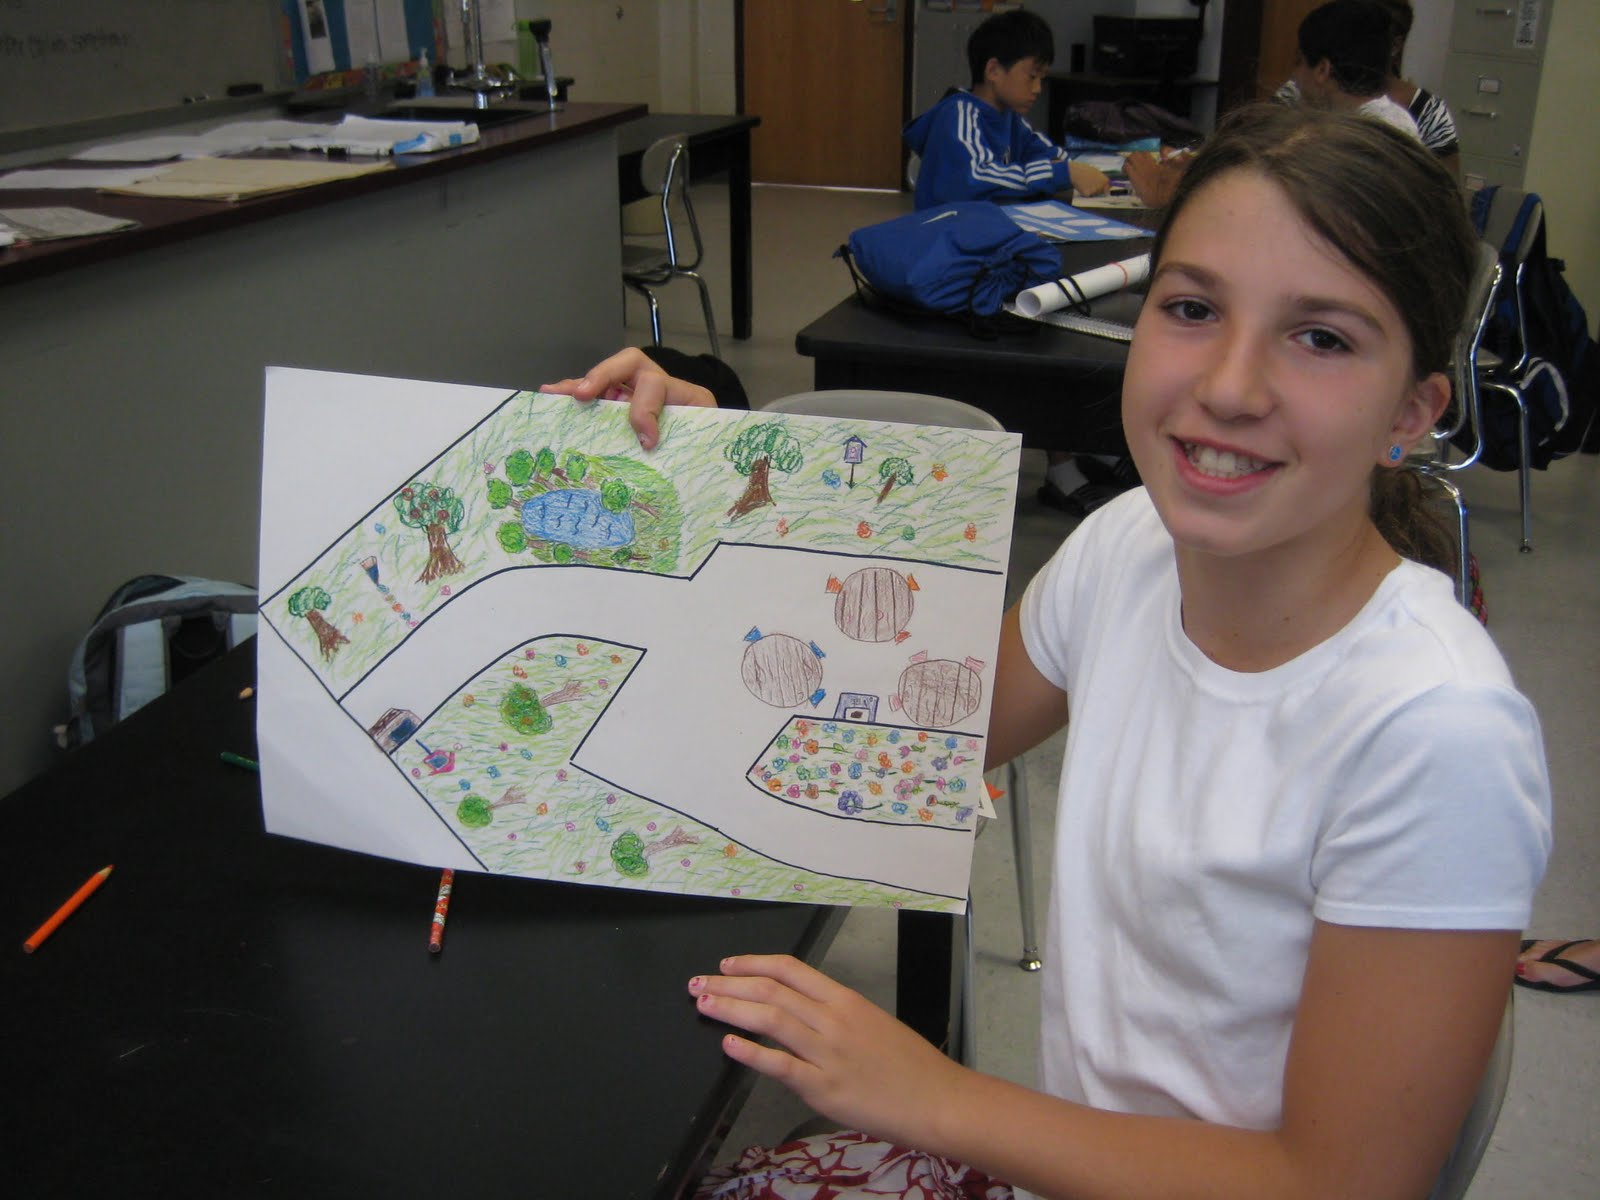 Outdoor Classroom Design Ideas : Places and spaces outdoor classroom design challenge